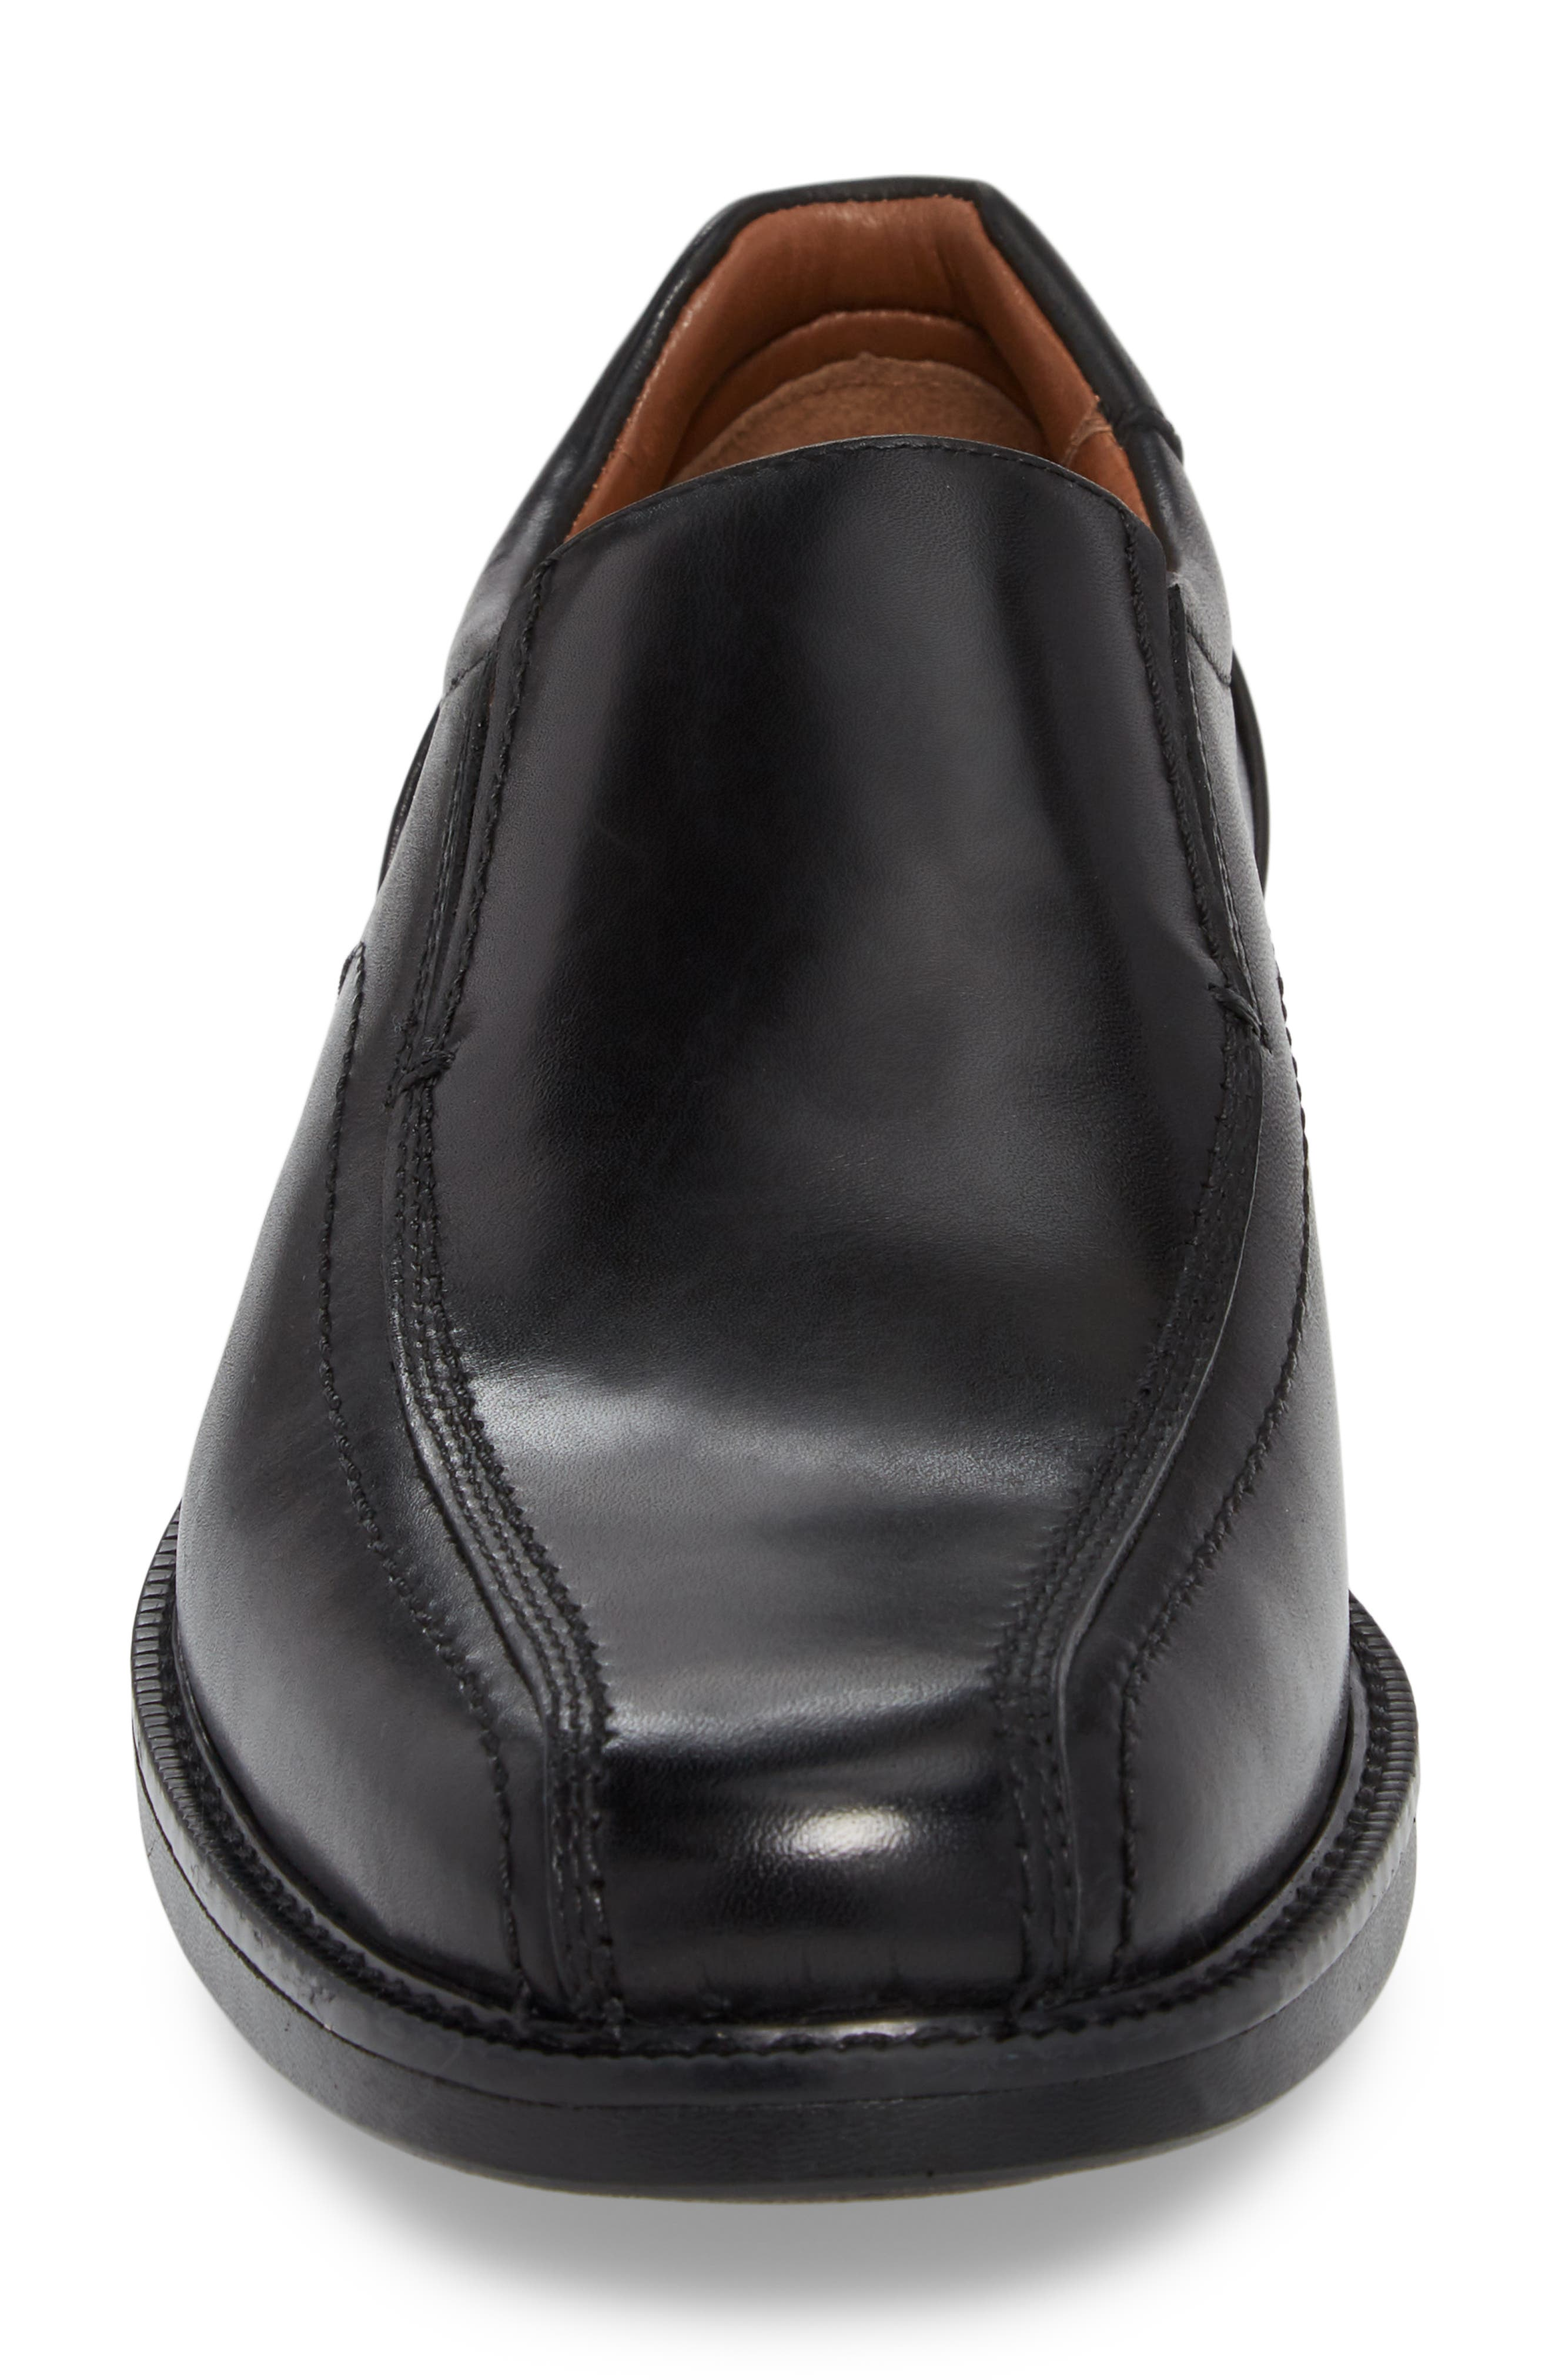 Stanton Runoff XC4<sup>®</sup> Waterproof Bike Toe Slip-On,                             Alternate thumbnail 4, color,                             BLACK LEATHER